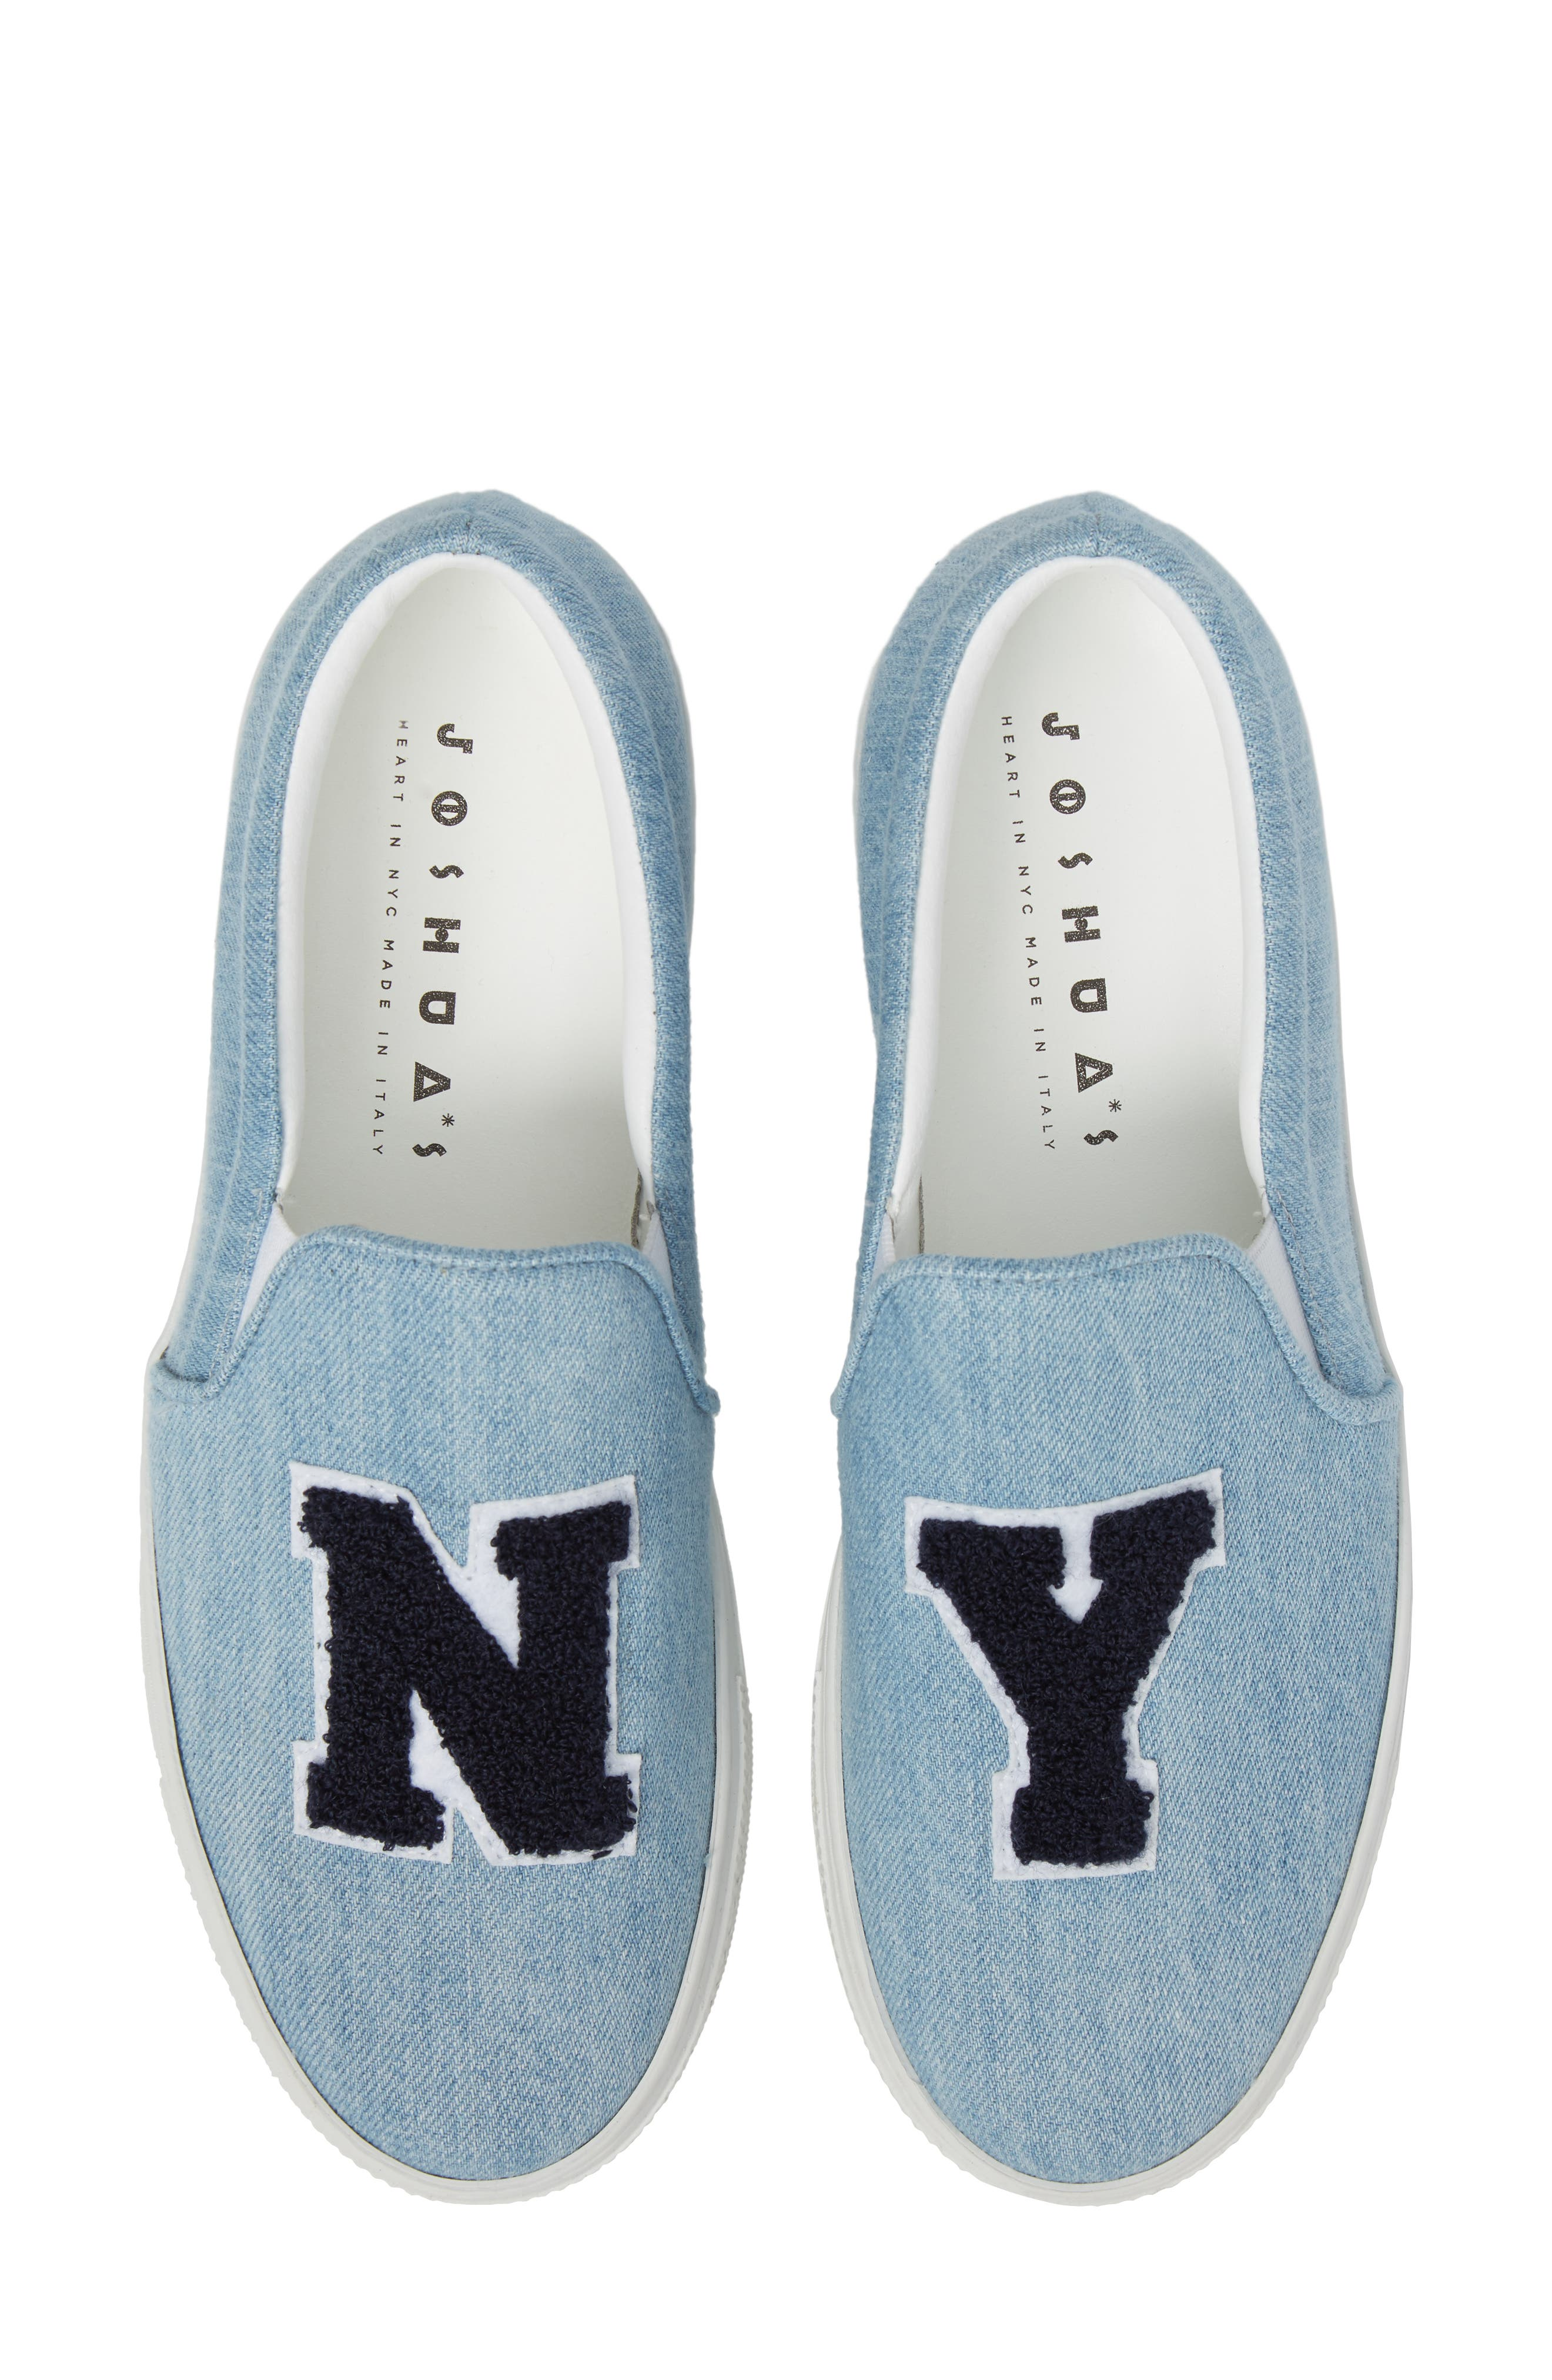 Alternate Image 1 Selected - Joshua Sanders Slip-On Sneaker (Women)